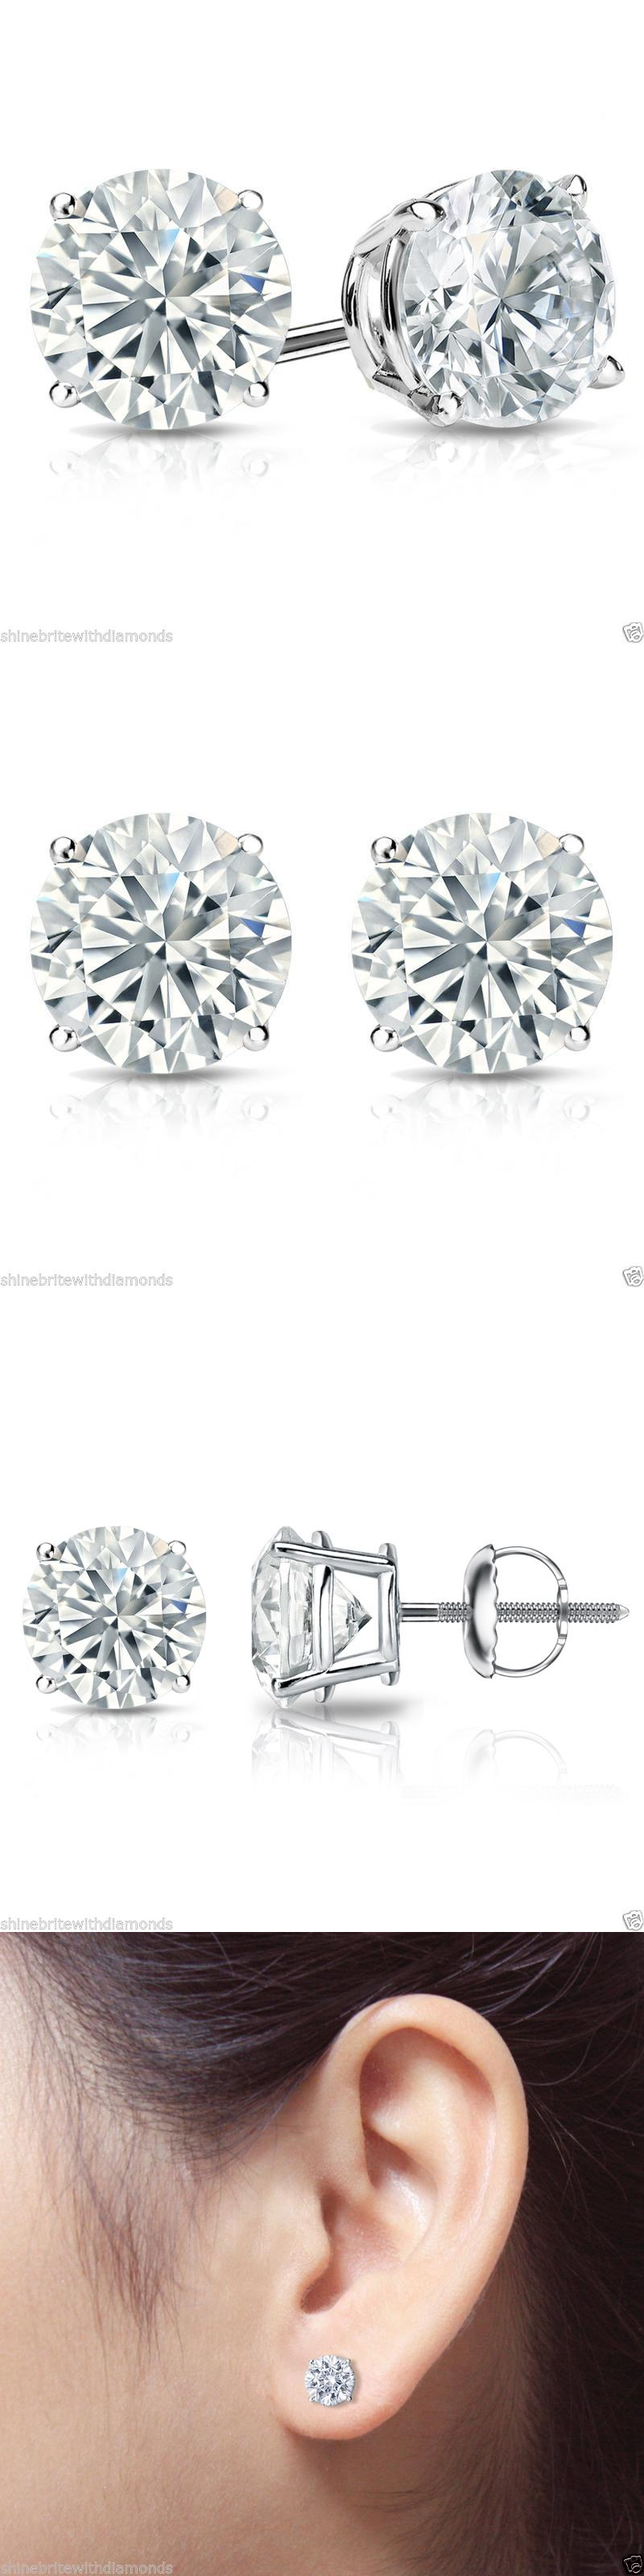 Diamond 10986: 2 Ct Round Earrings Studs Solid 14K White Gold Brilliant Cut Basket Screw Back BUY IT NOW ONLY: $139.95